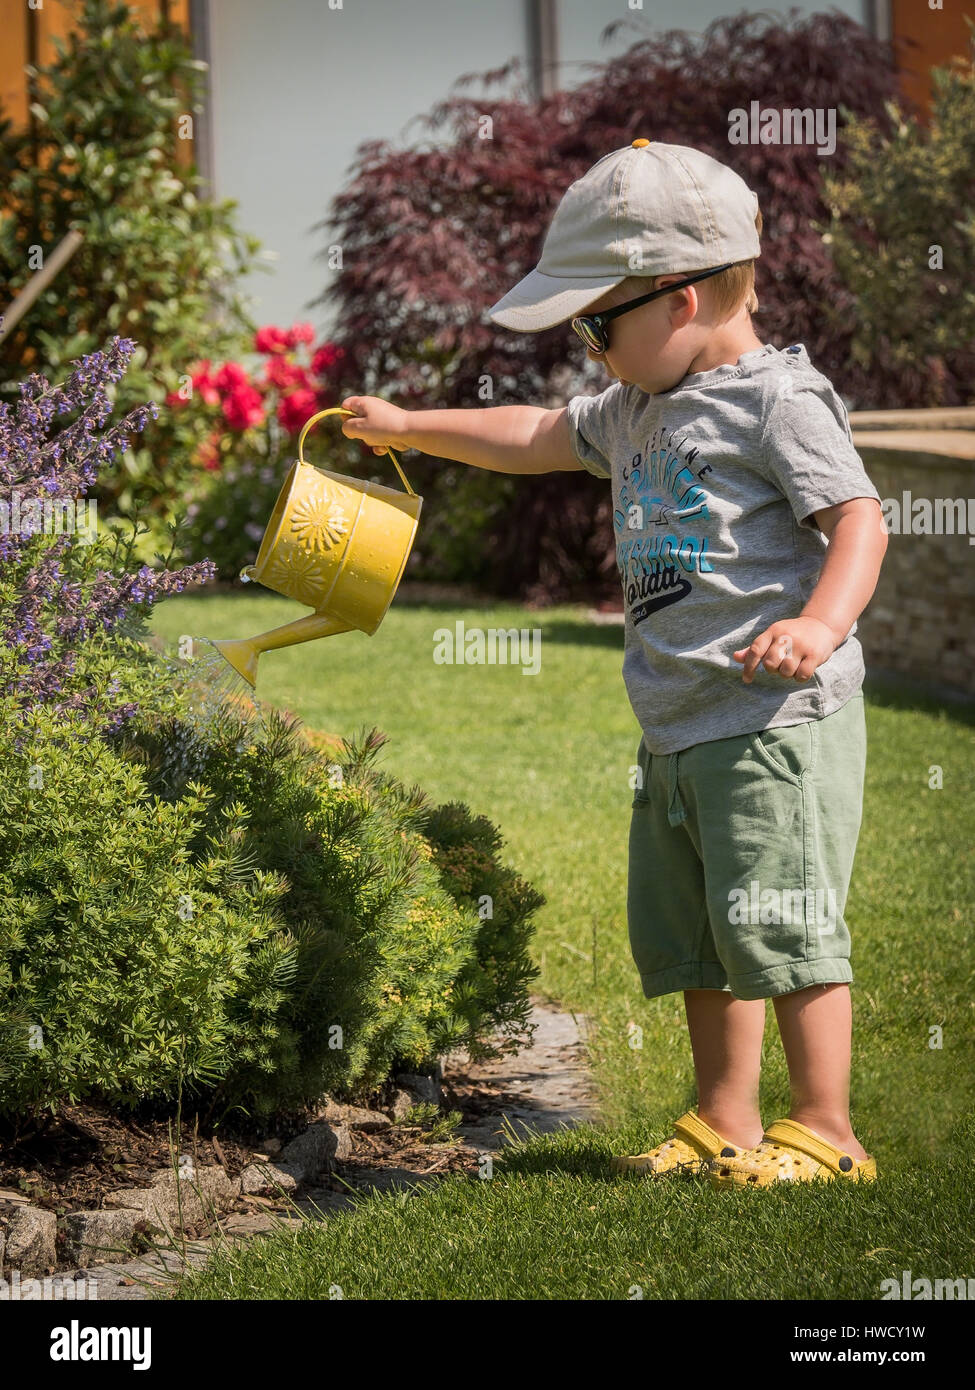 A small boy squirts the flowers on a hot day in summer with a watering can, Ein kleiner Bub spritzt mit einer Gießkanne Stock Photo